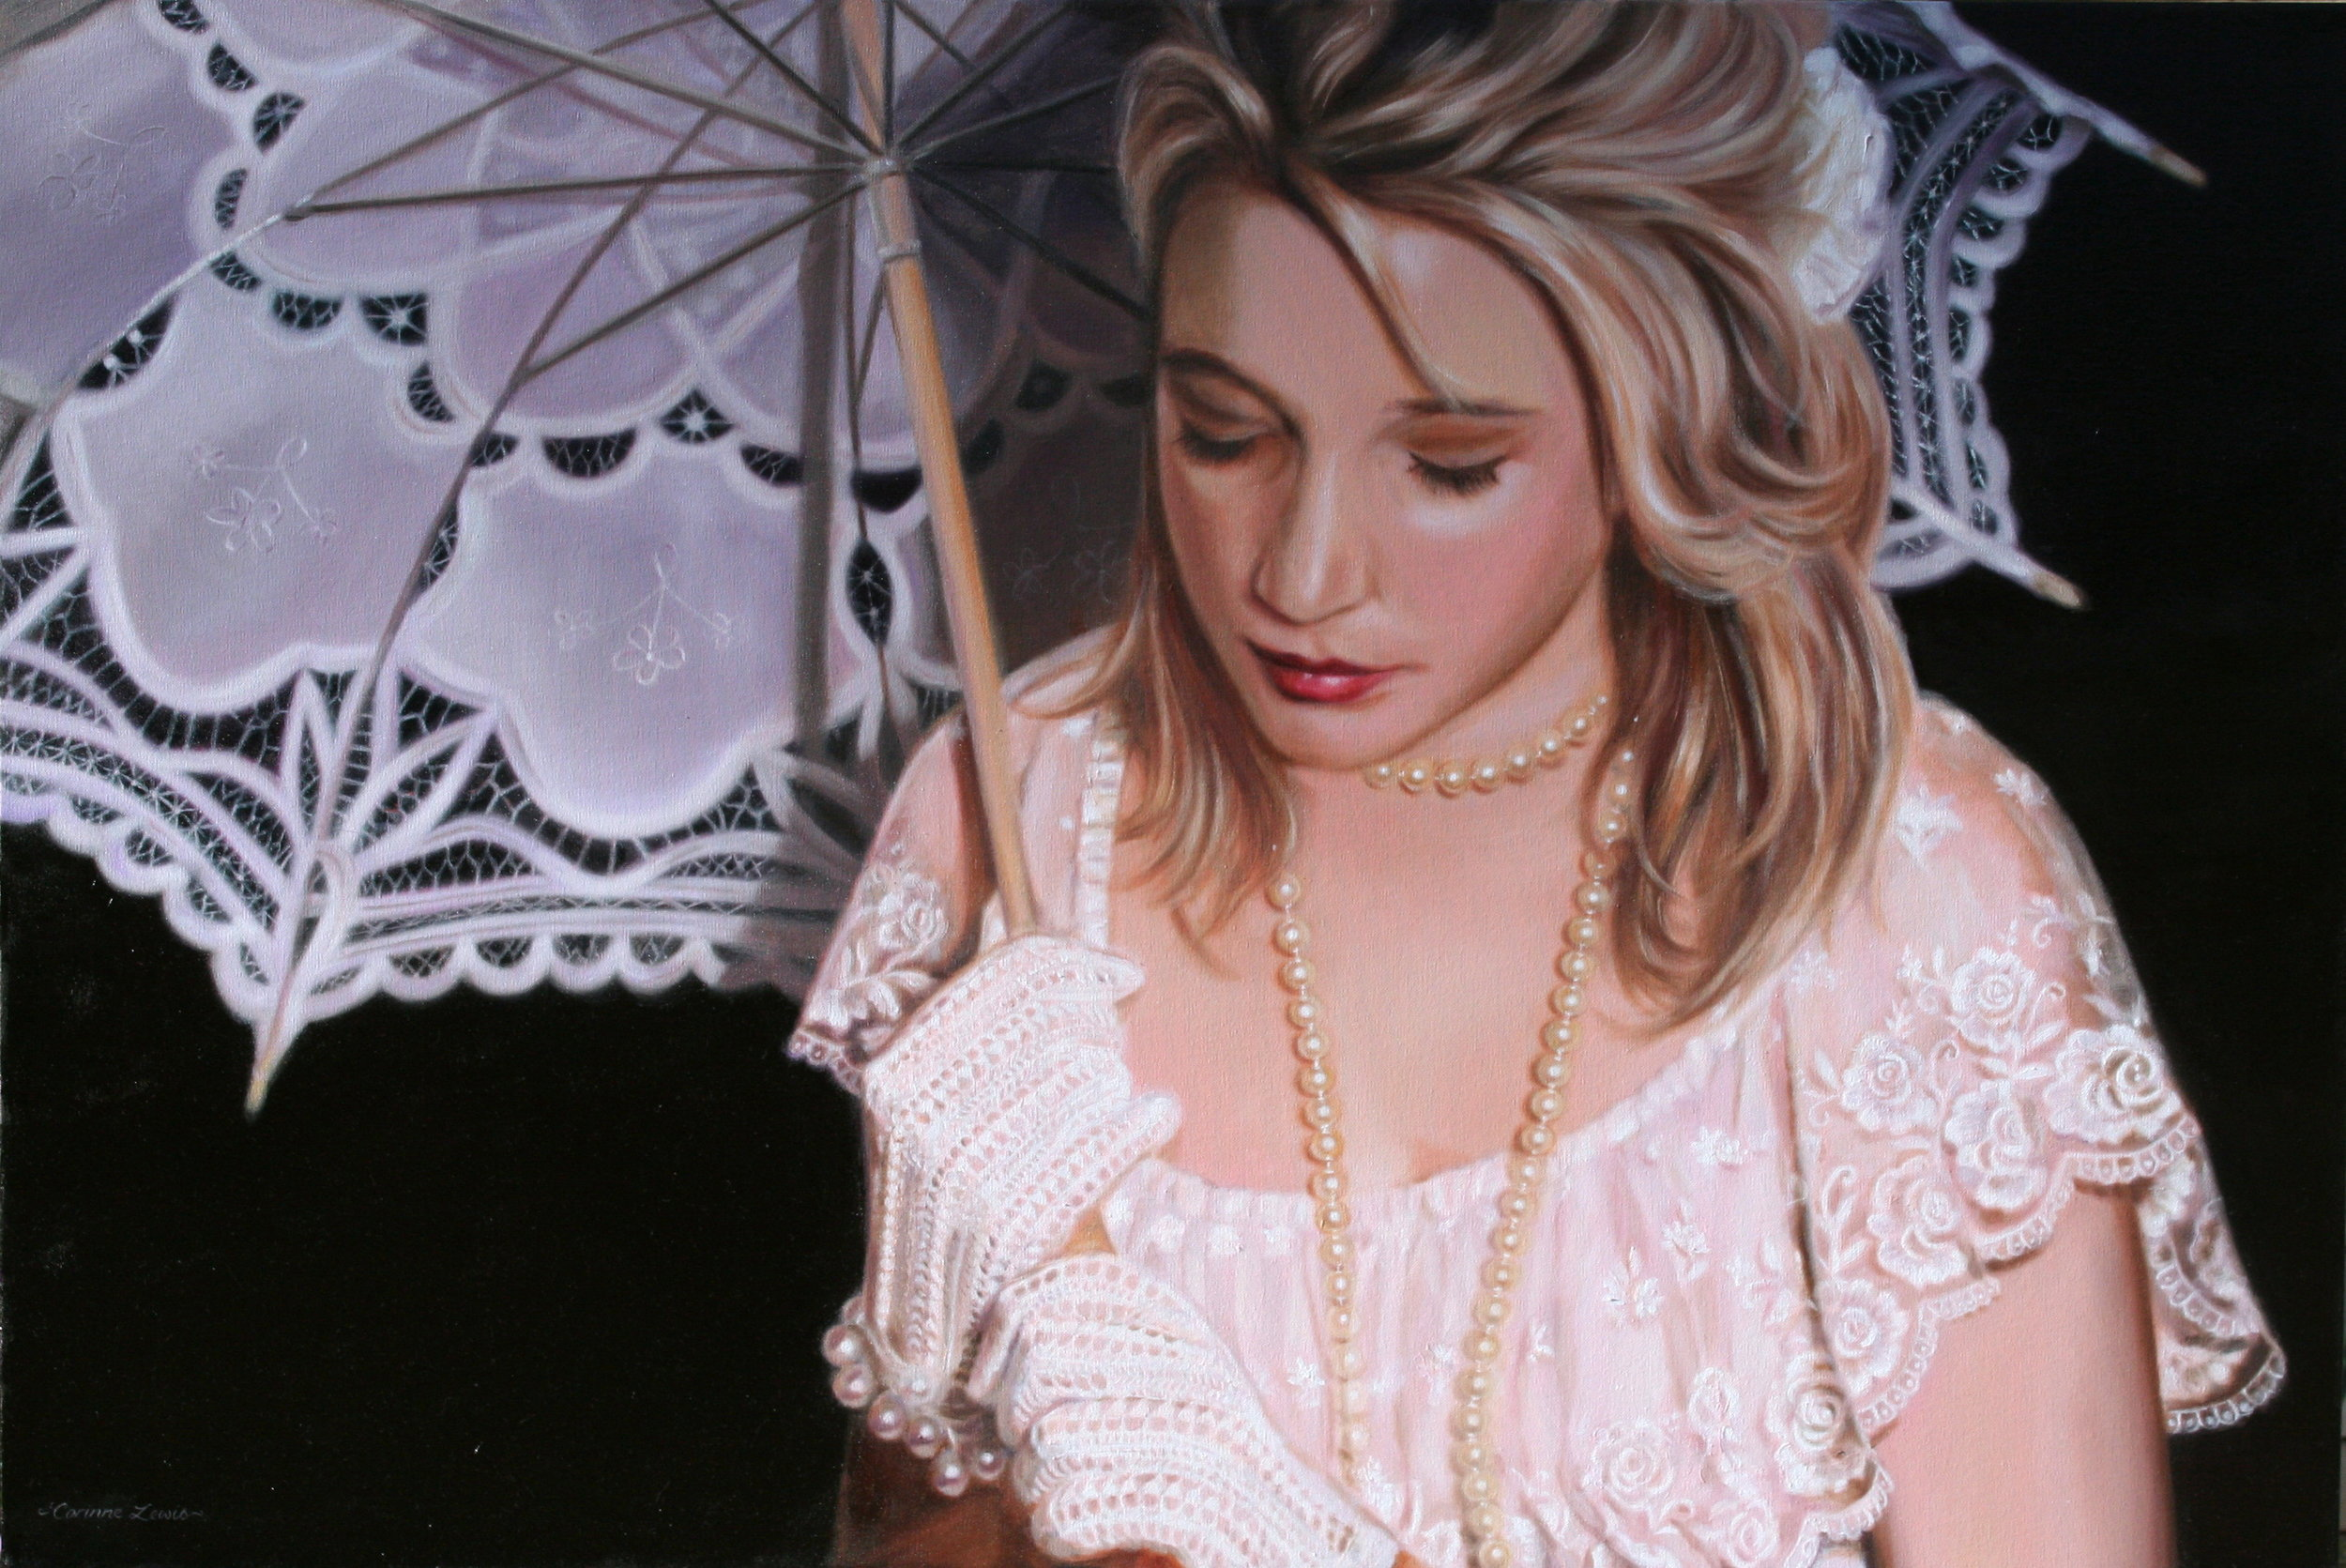 Portrait of Jessica Oil on Linen 100 x 65cm approx